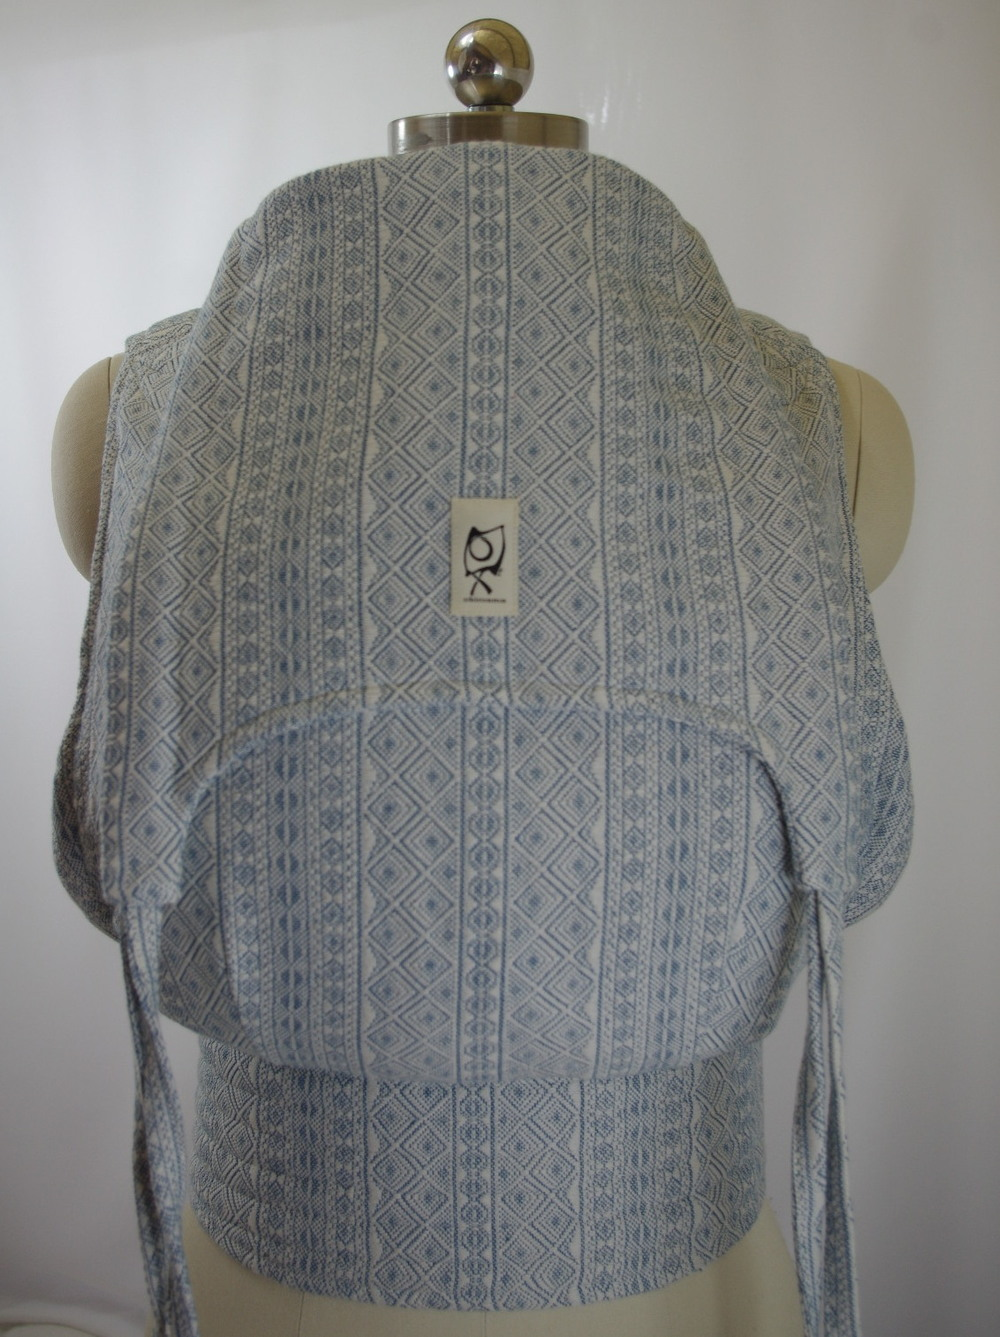 Didymos Midwives Indio ObiMama Wrap Conversion Mei Tai